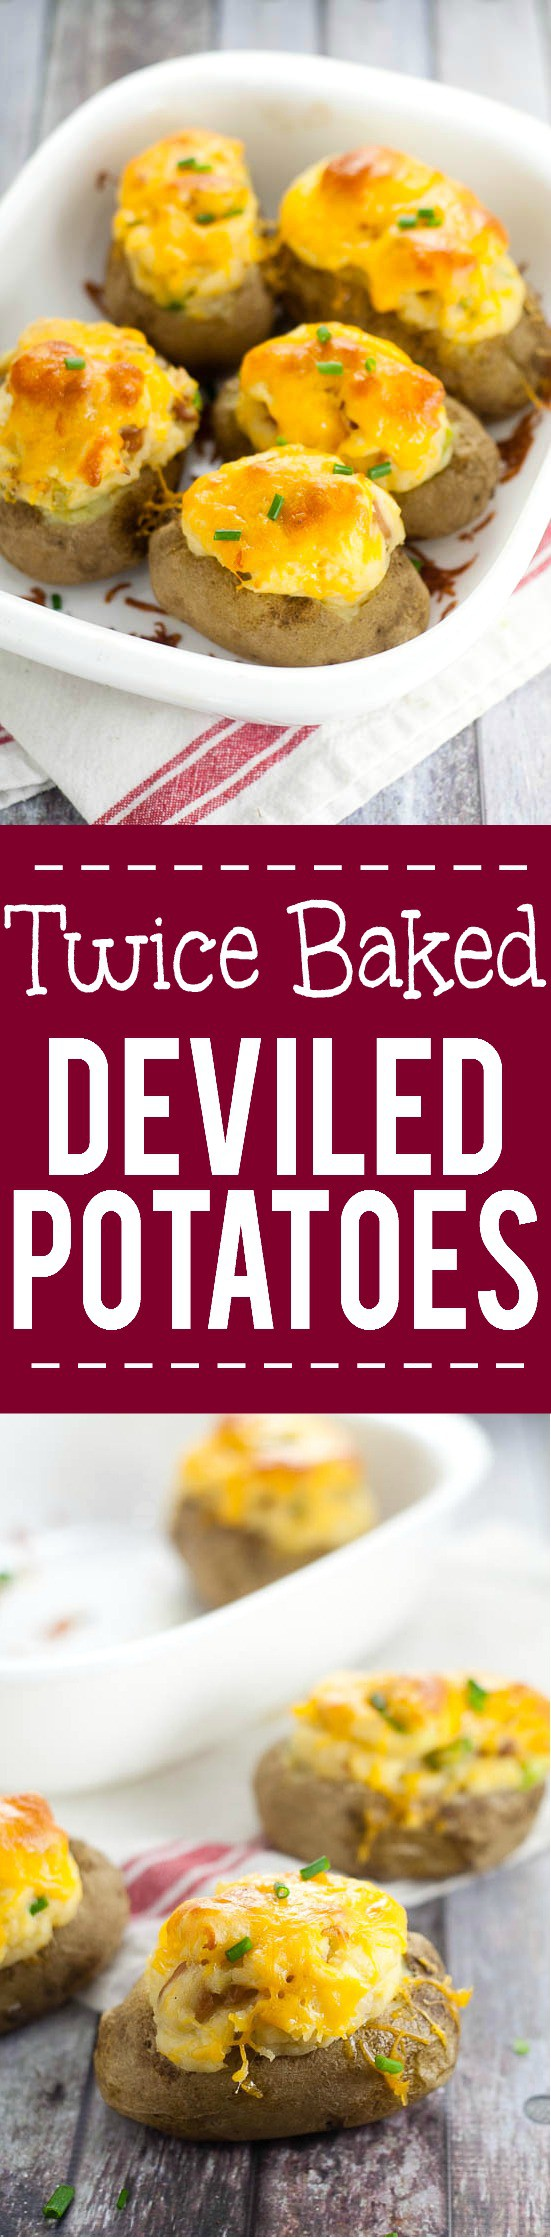 Twice Baked Deviled Potatoes recipe - Named after their eggy-likeness, these Twice Baked Deviled Potatoes are tangy baked potatoes, whipped, and oven-baked to golden perfection. Yummy and easy potato side dish recipe!